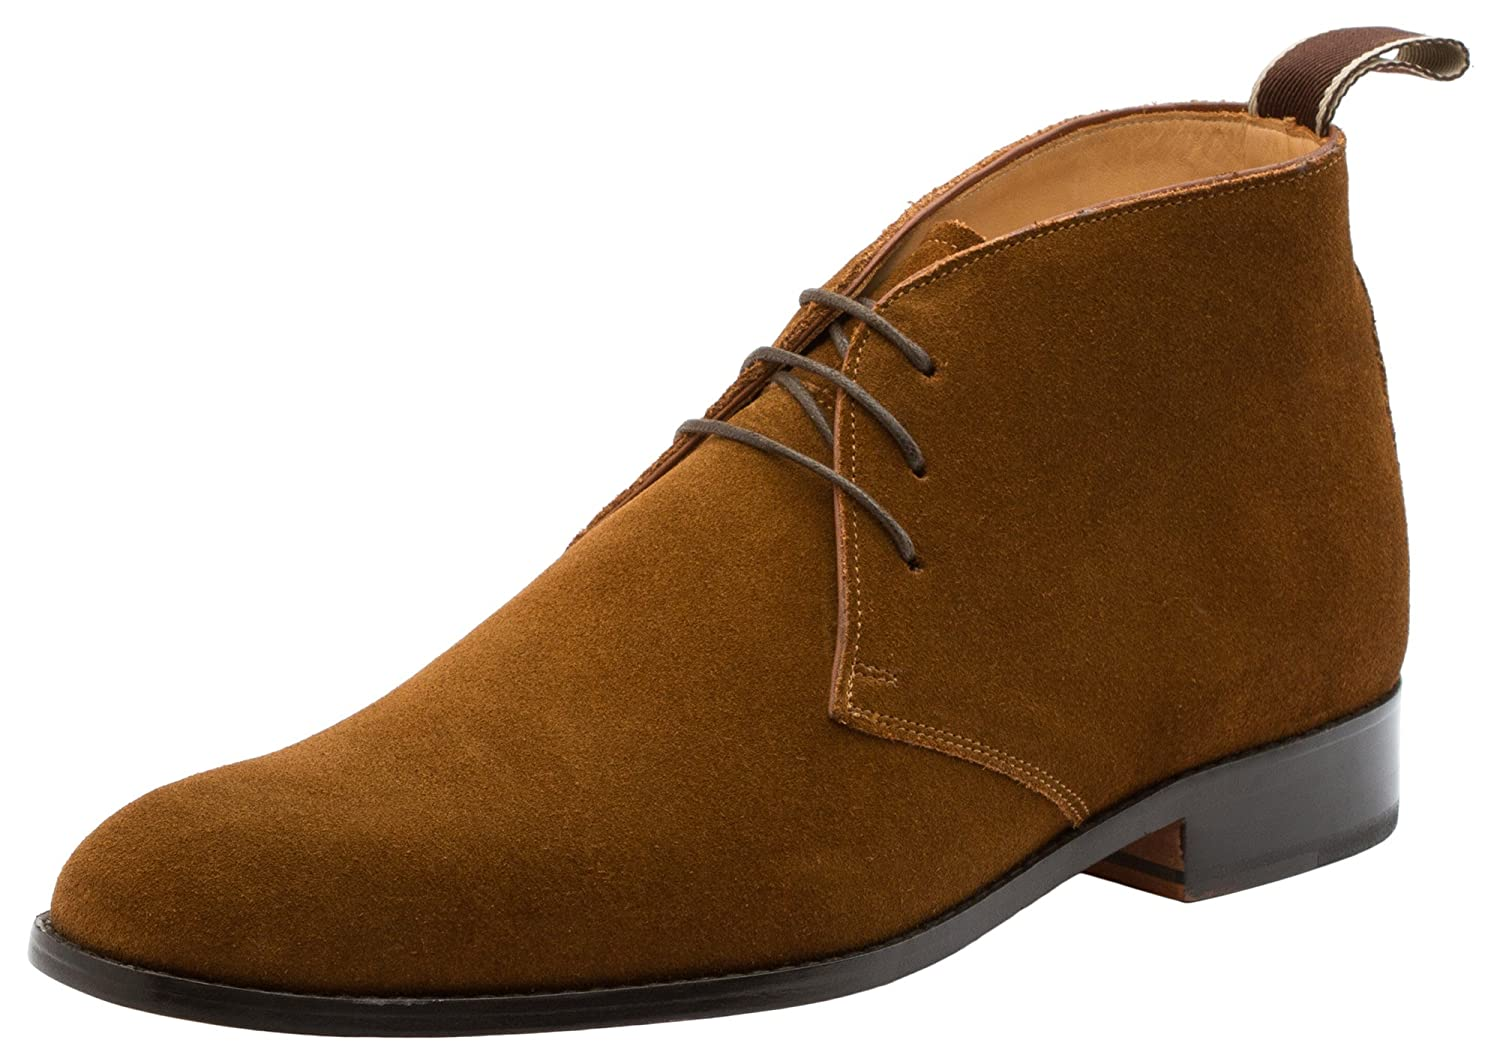 Dapper Shoes Co. Men's Modern Classic Calfskin Leather Chukka Boots